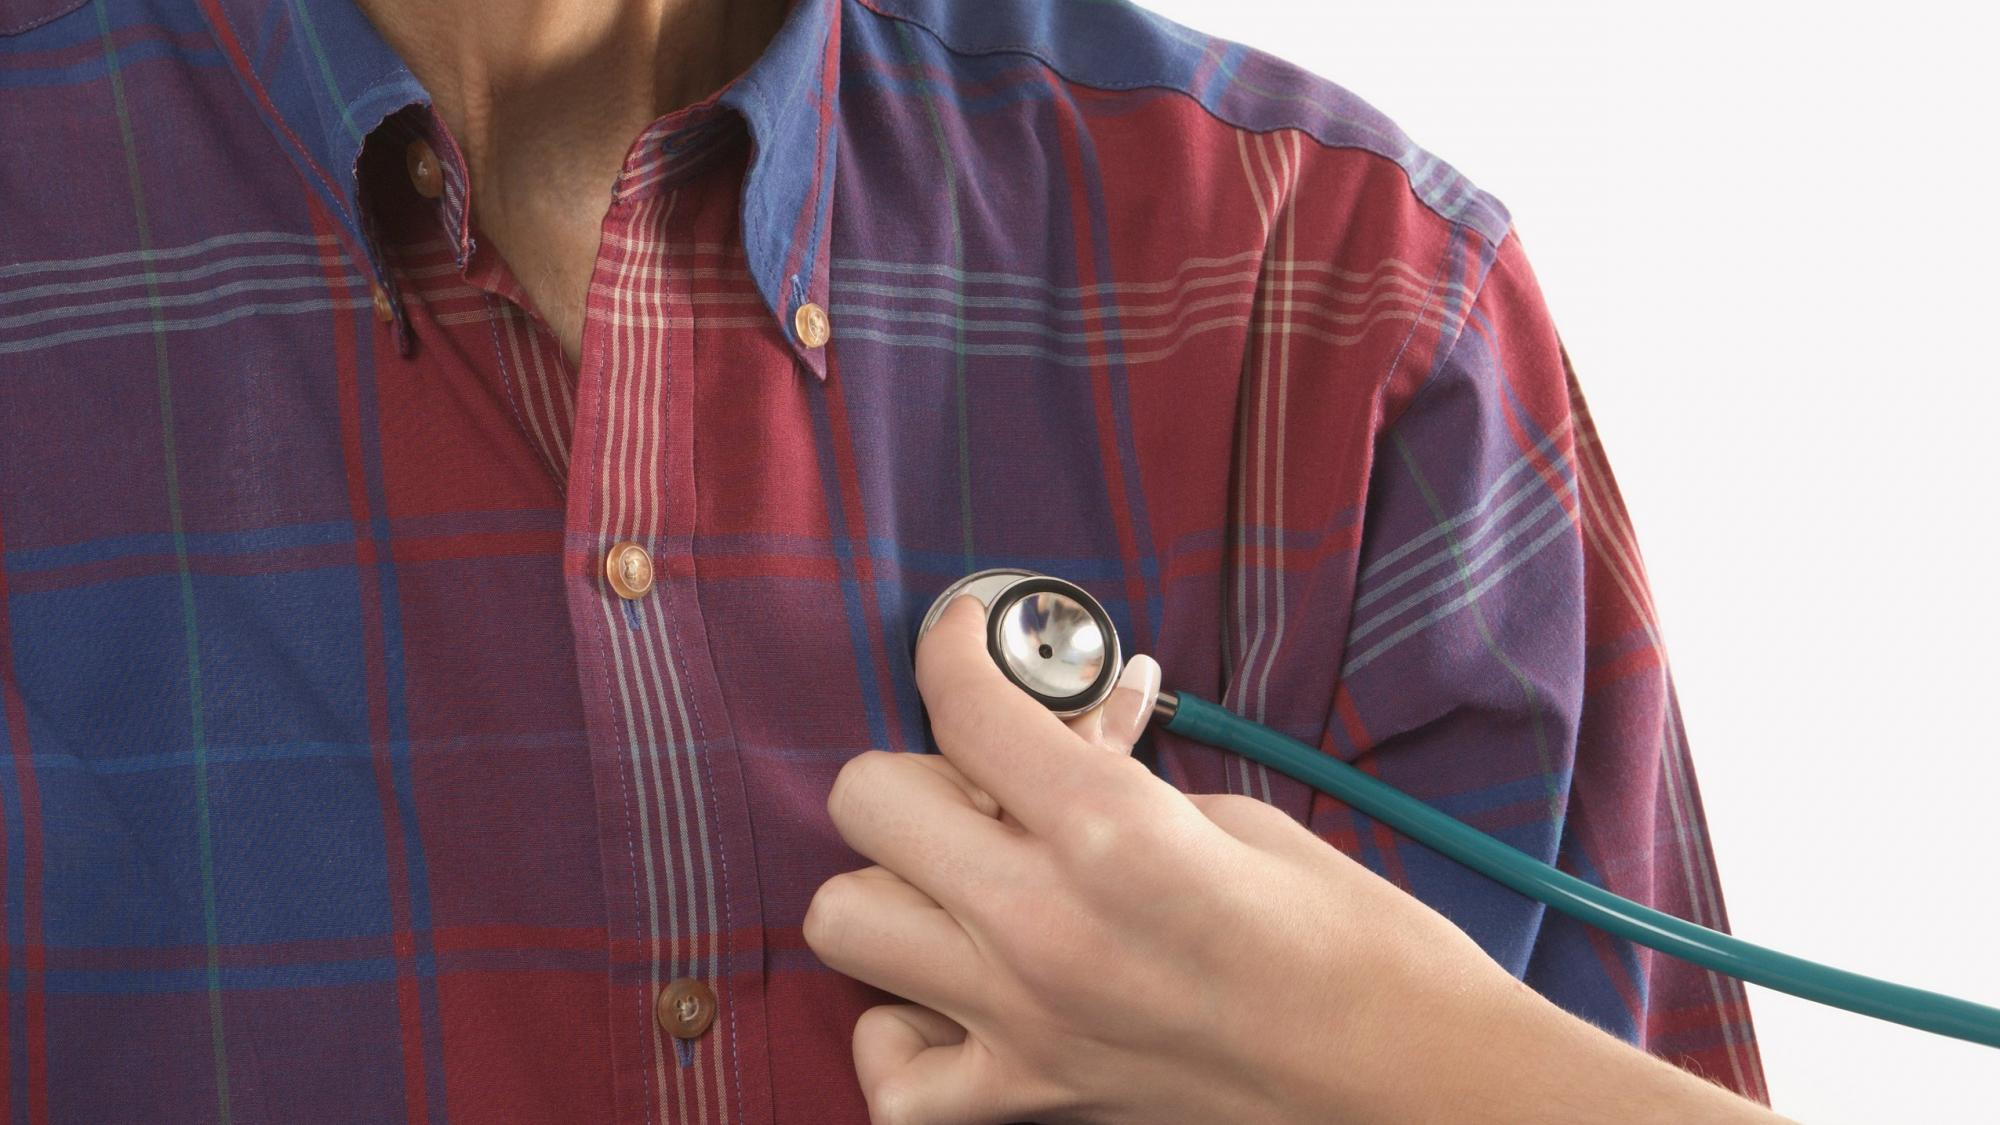 An elderly male and a stethoscope